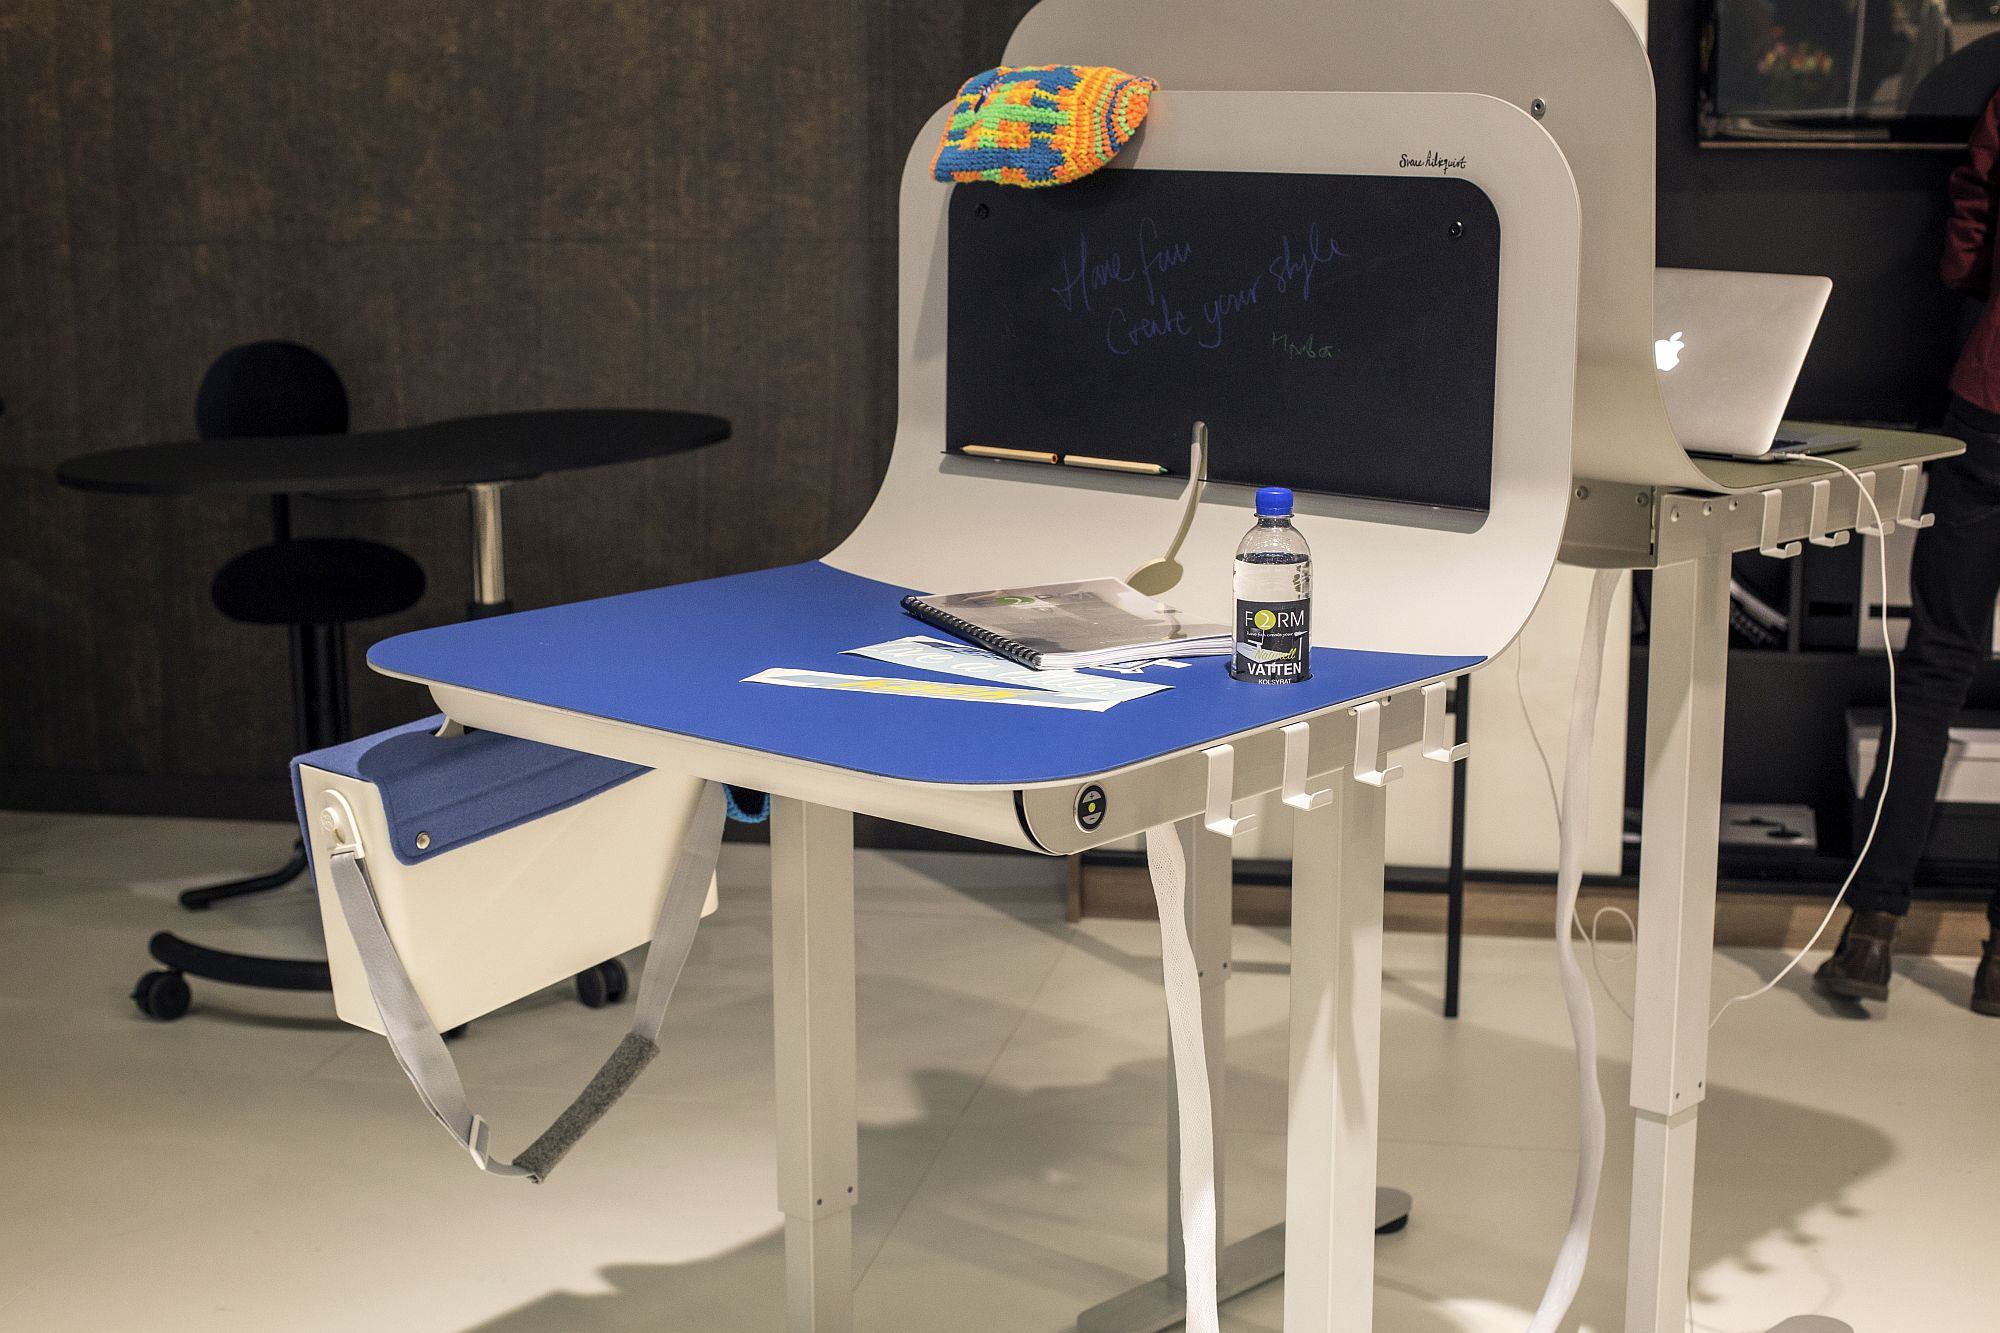 Colorful and dashing desks are both fun and space-savvy